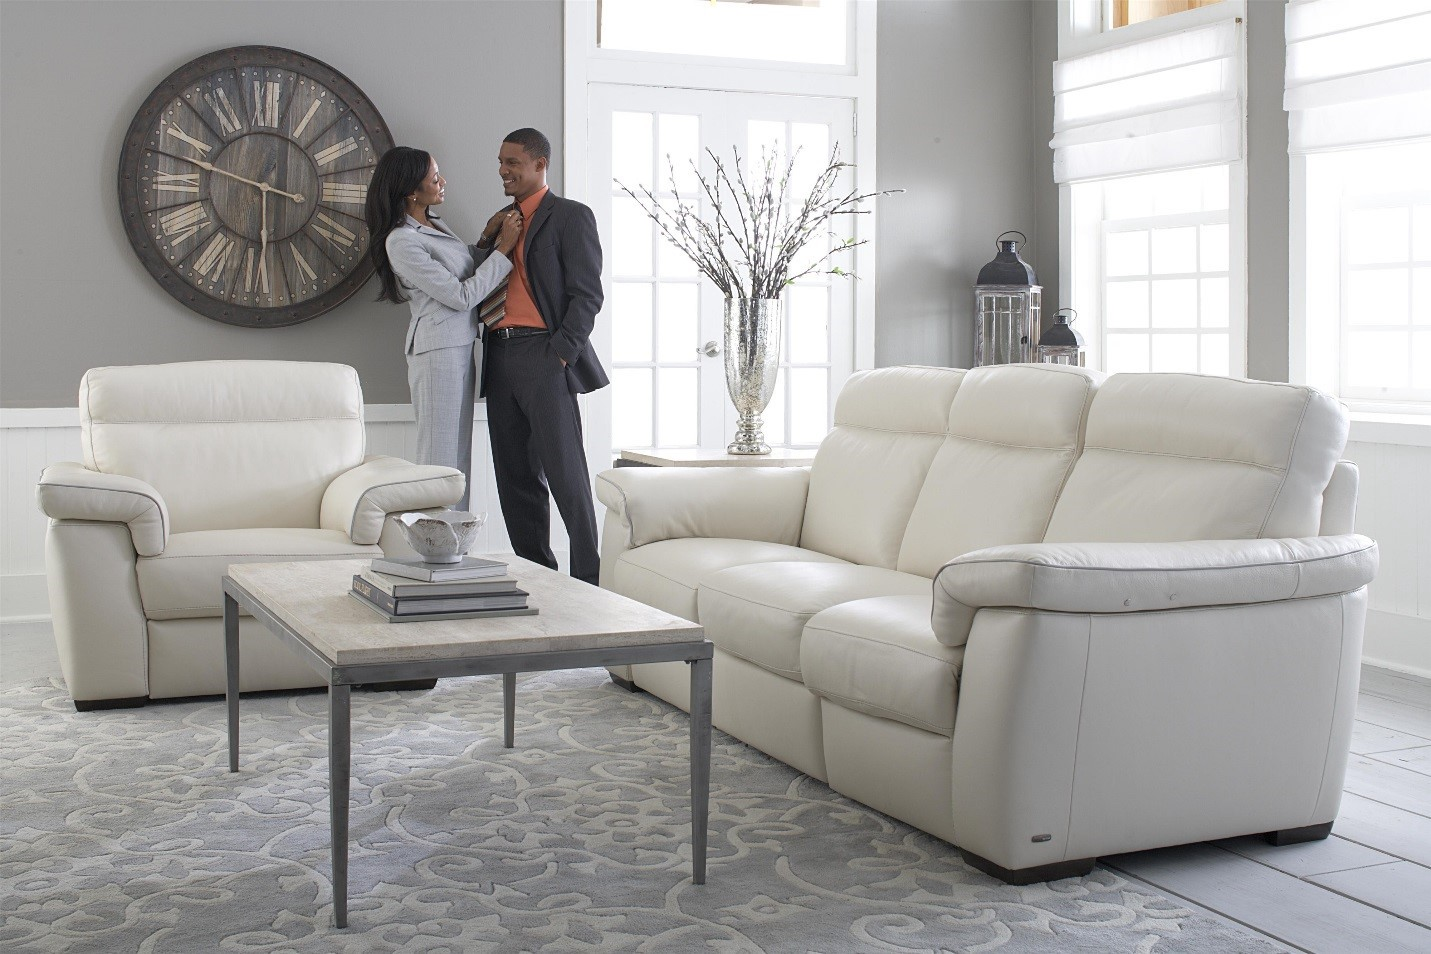 Decorate with Bright, White, Contemporary Natuzzi Leather ...